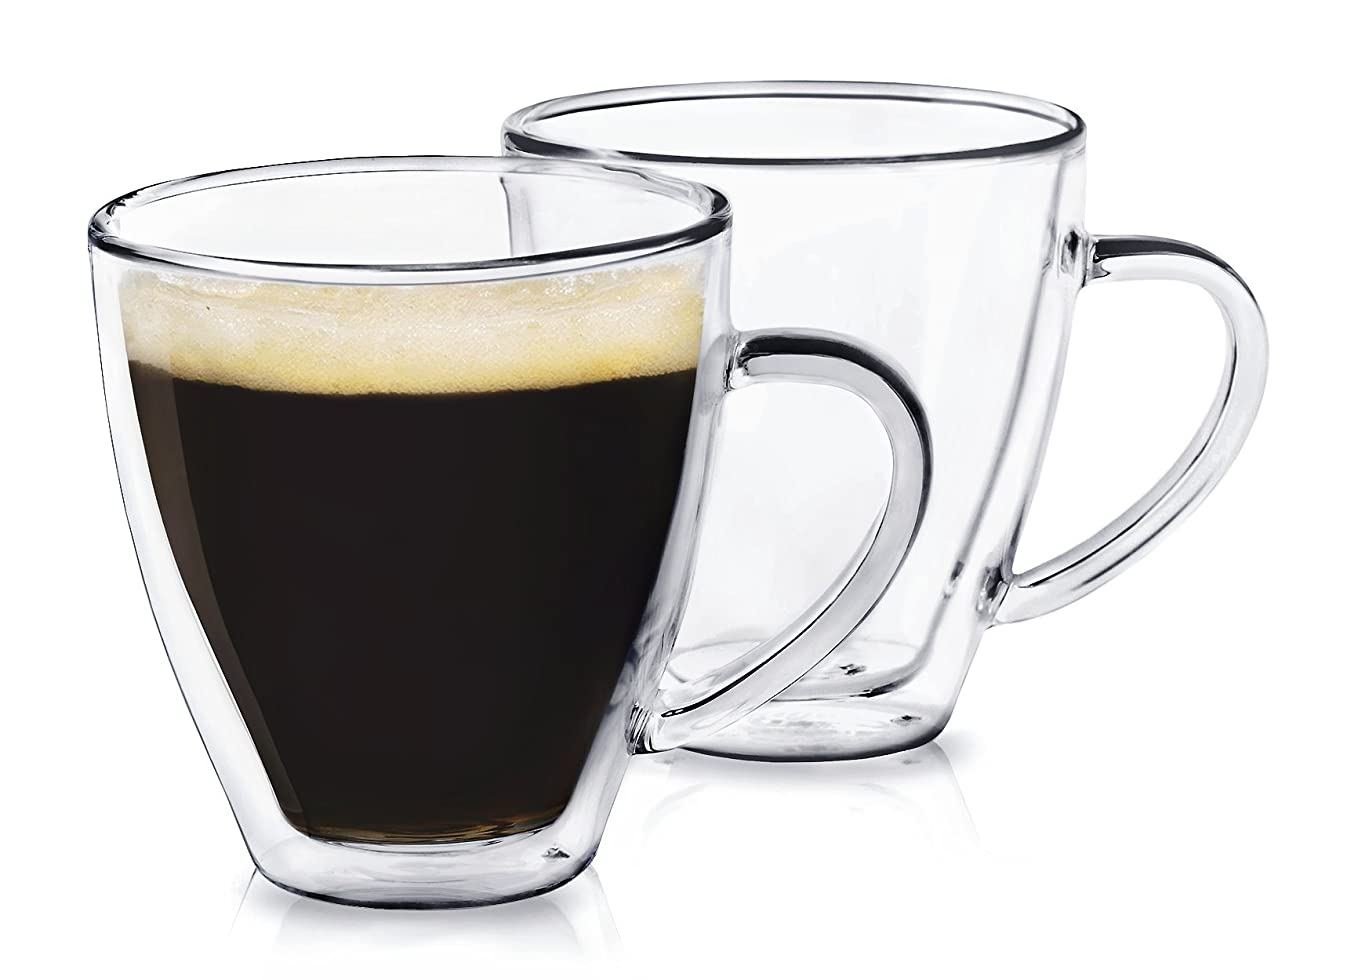 Dragon Glassware Espresso Cups, Premium Designer Glasses with Insulated Double-Walled Design, 6-Ounces, Gift Boxed - Set of 2